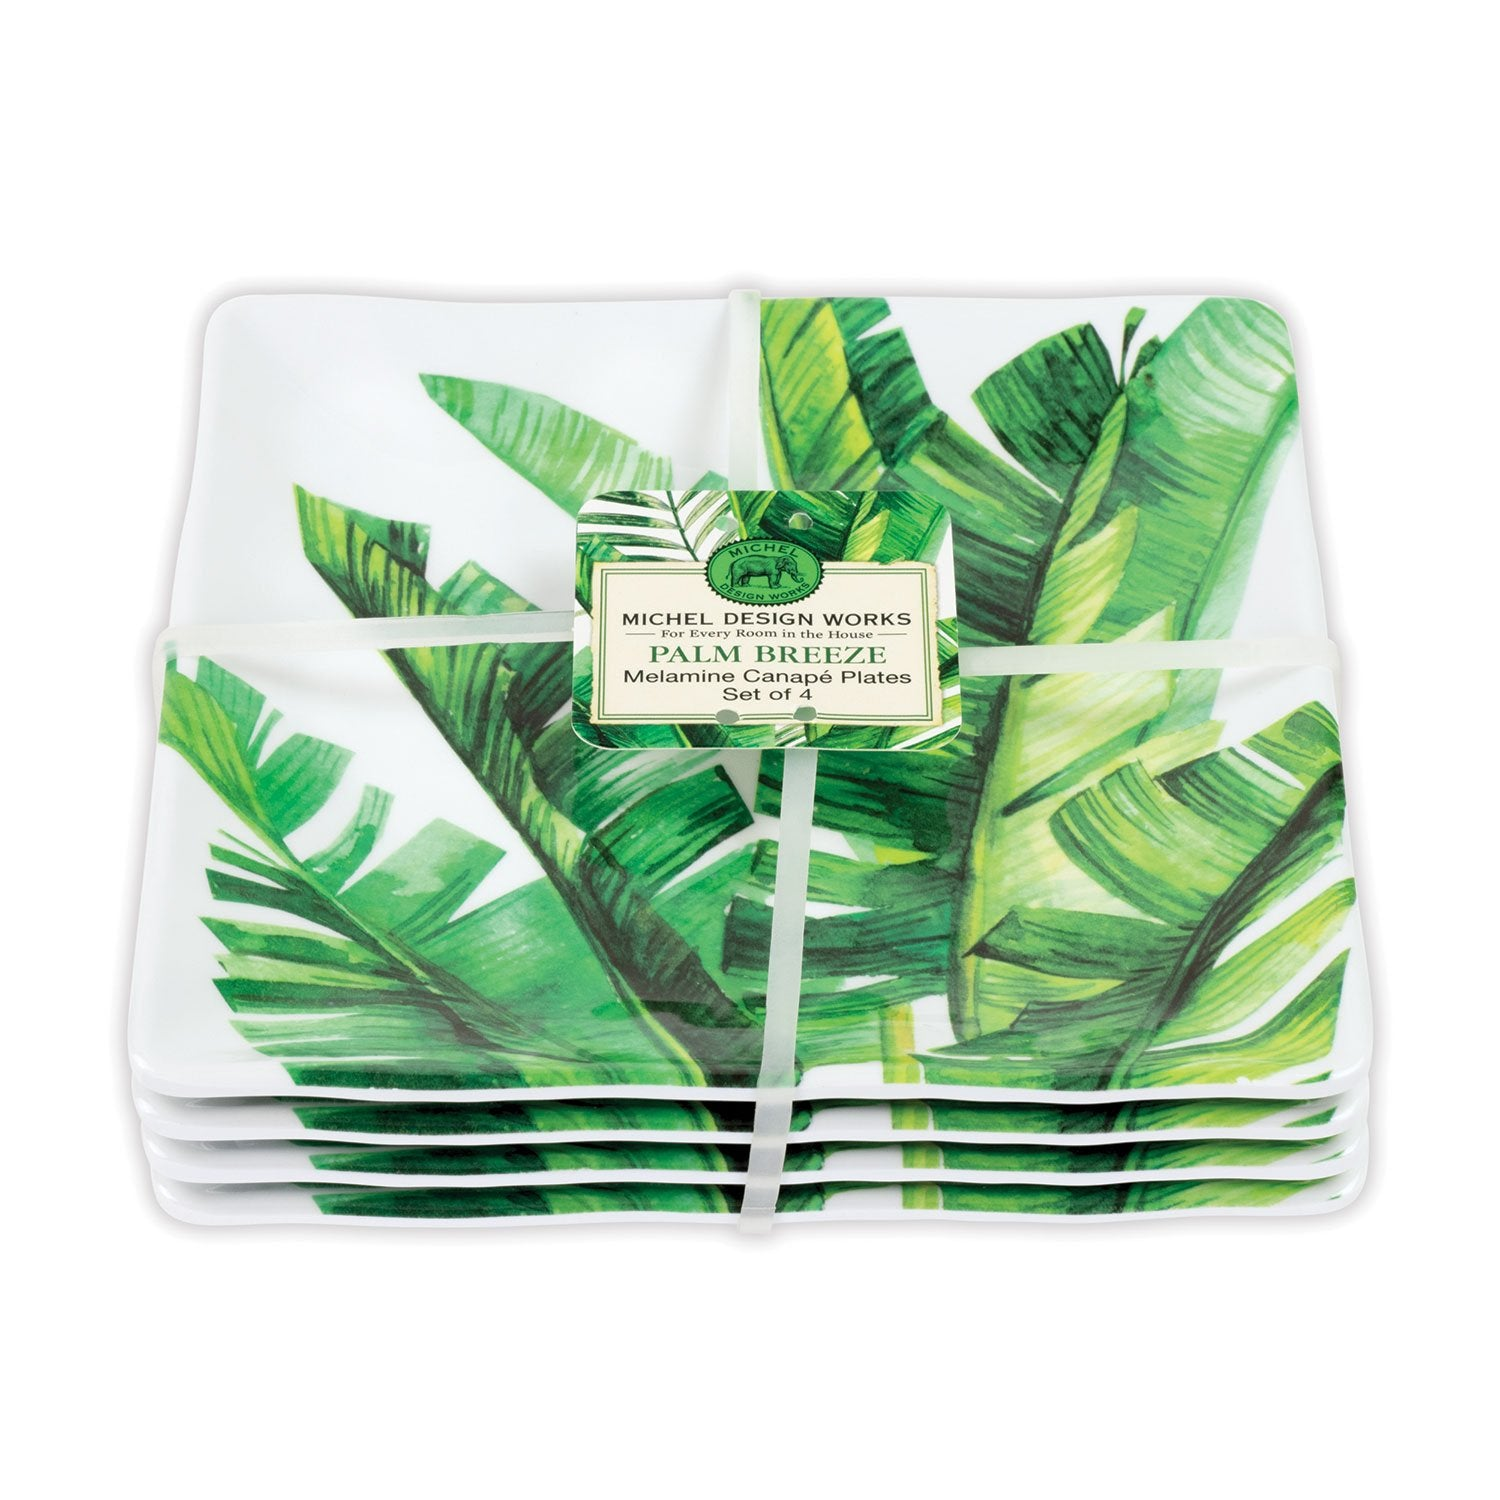 Palm Breeze Melamine Serveware Canape Plate Set